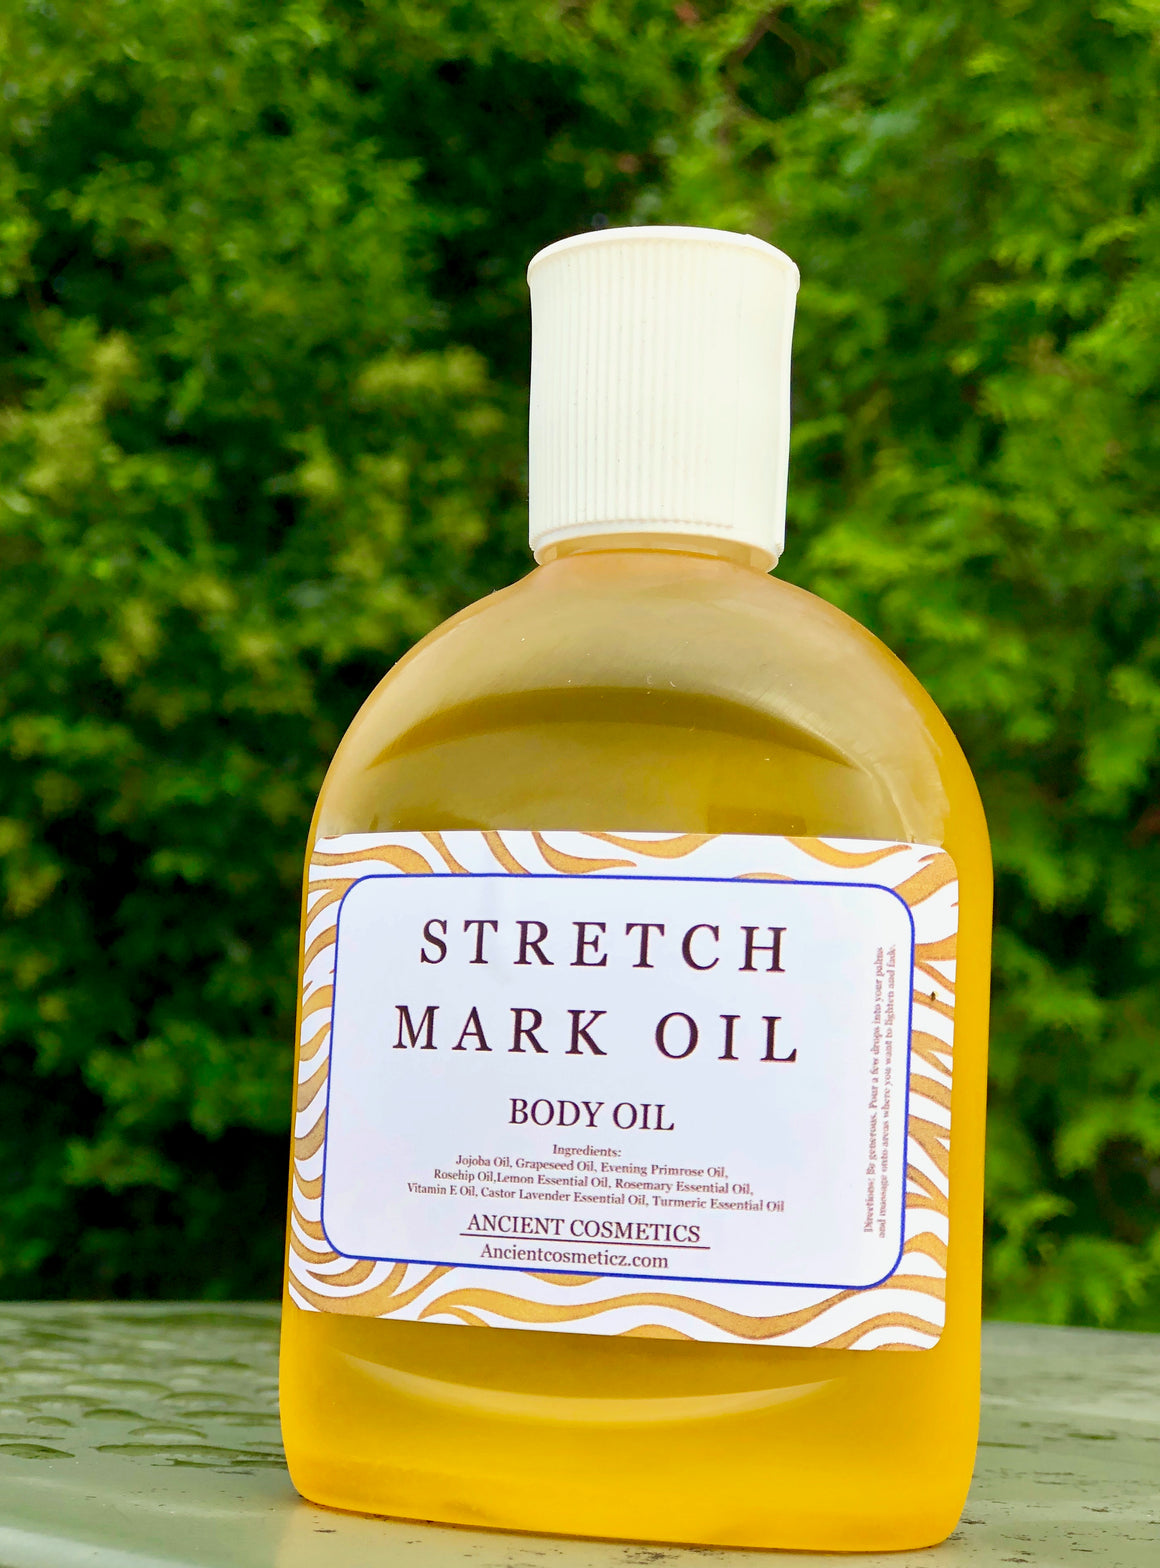 Stretch Mark Oil